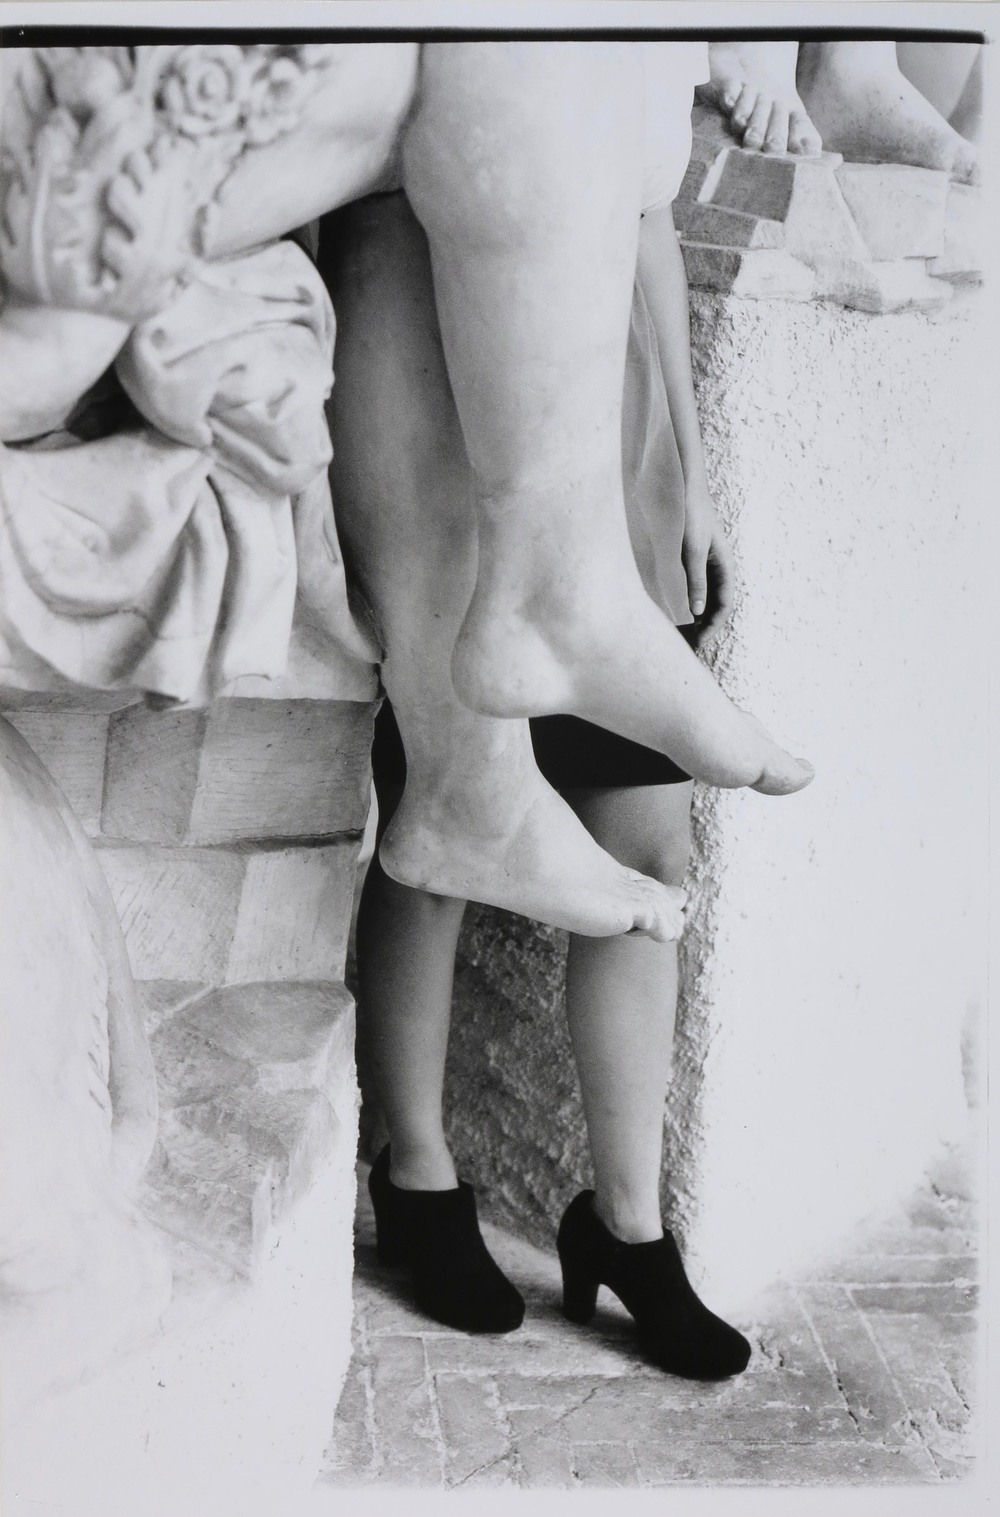 Legs at the Bargello  2014  gelatin silver print  36 x 24 inches